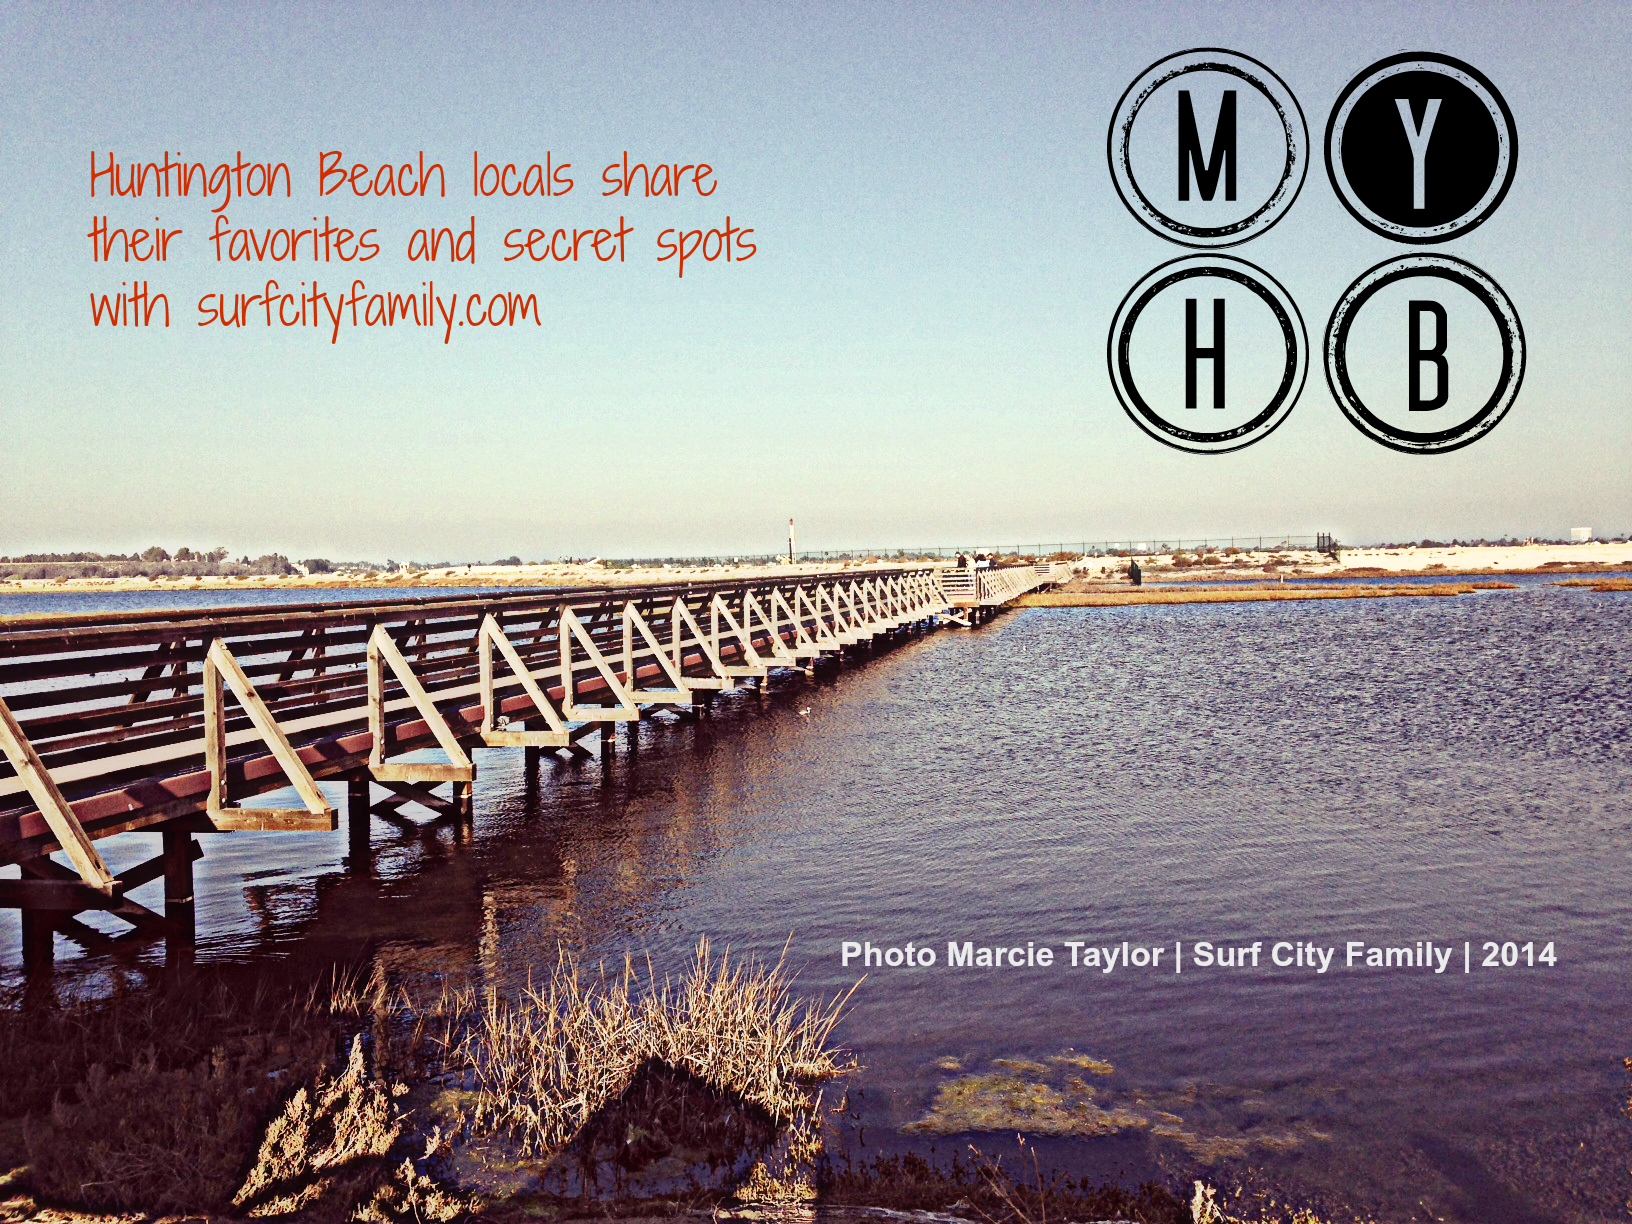 My HB | Bolsa Chica Wetlands | Surf City Family